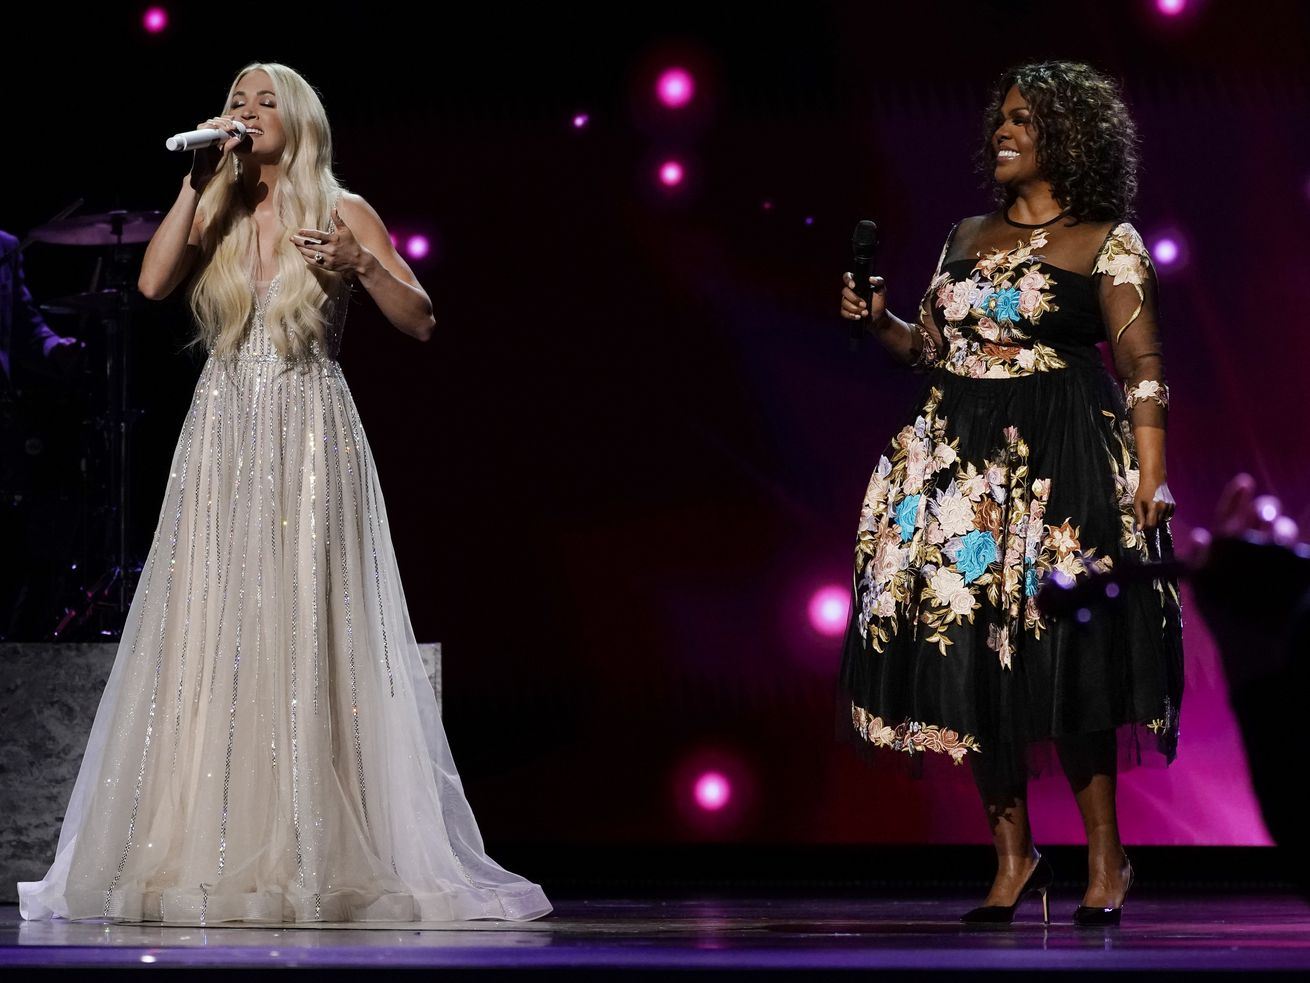 Carrie Underwood (left) and CeCe Winans perform at the 56th annual Academy of Country Music Awards on Saturday at the Grand Ole Opry in Nashville, Tennessee.